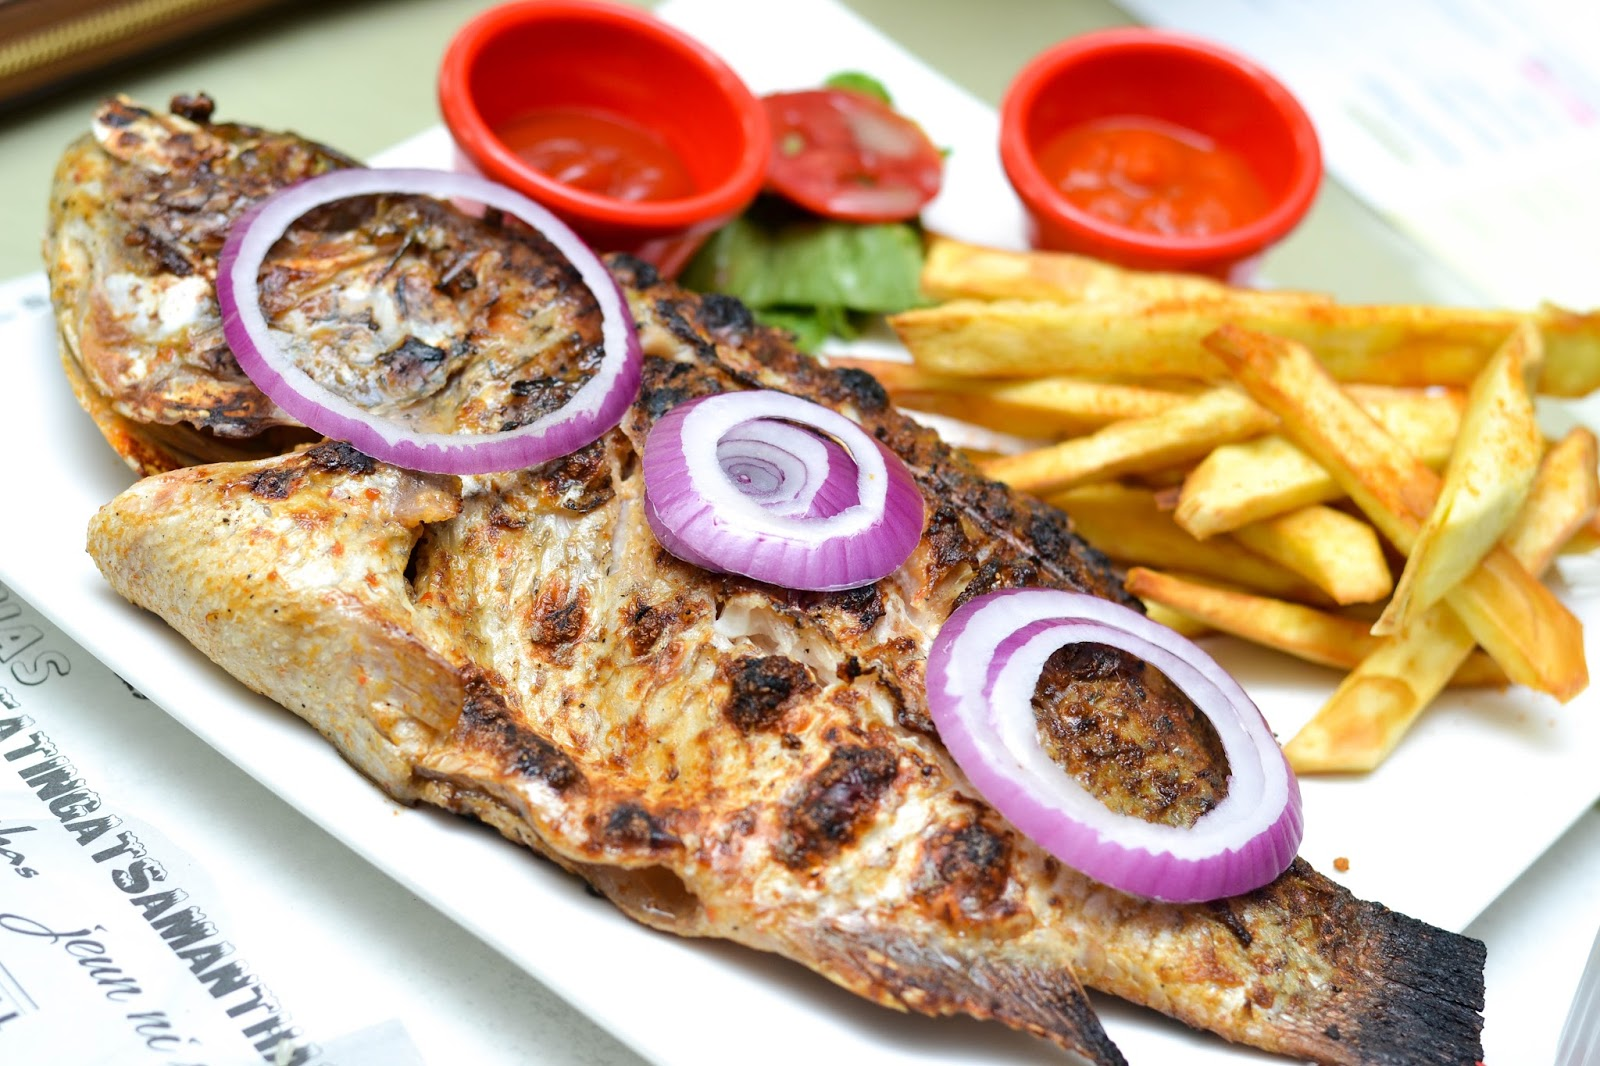 Samantha's Bistro Grilled Tilapia Fish